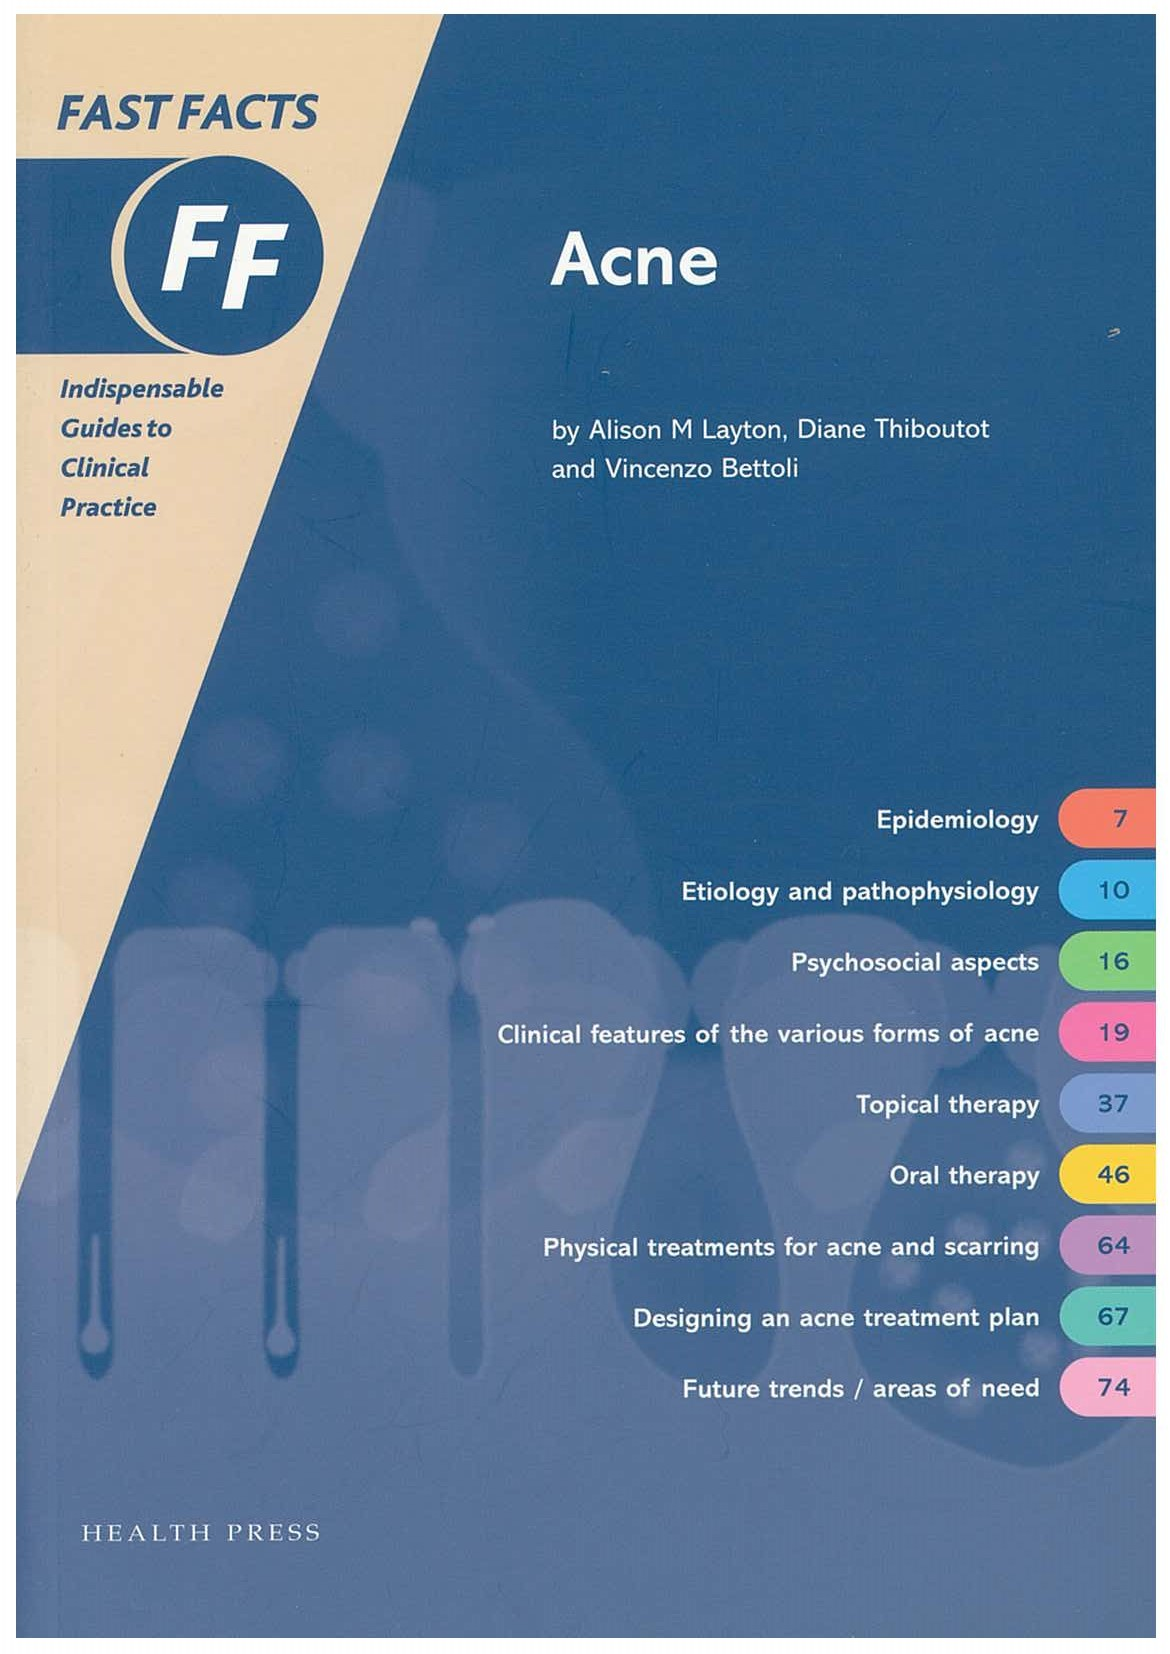 Fast Facts: Acne - Featured Image